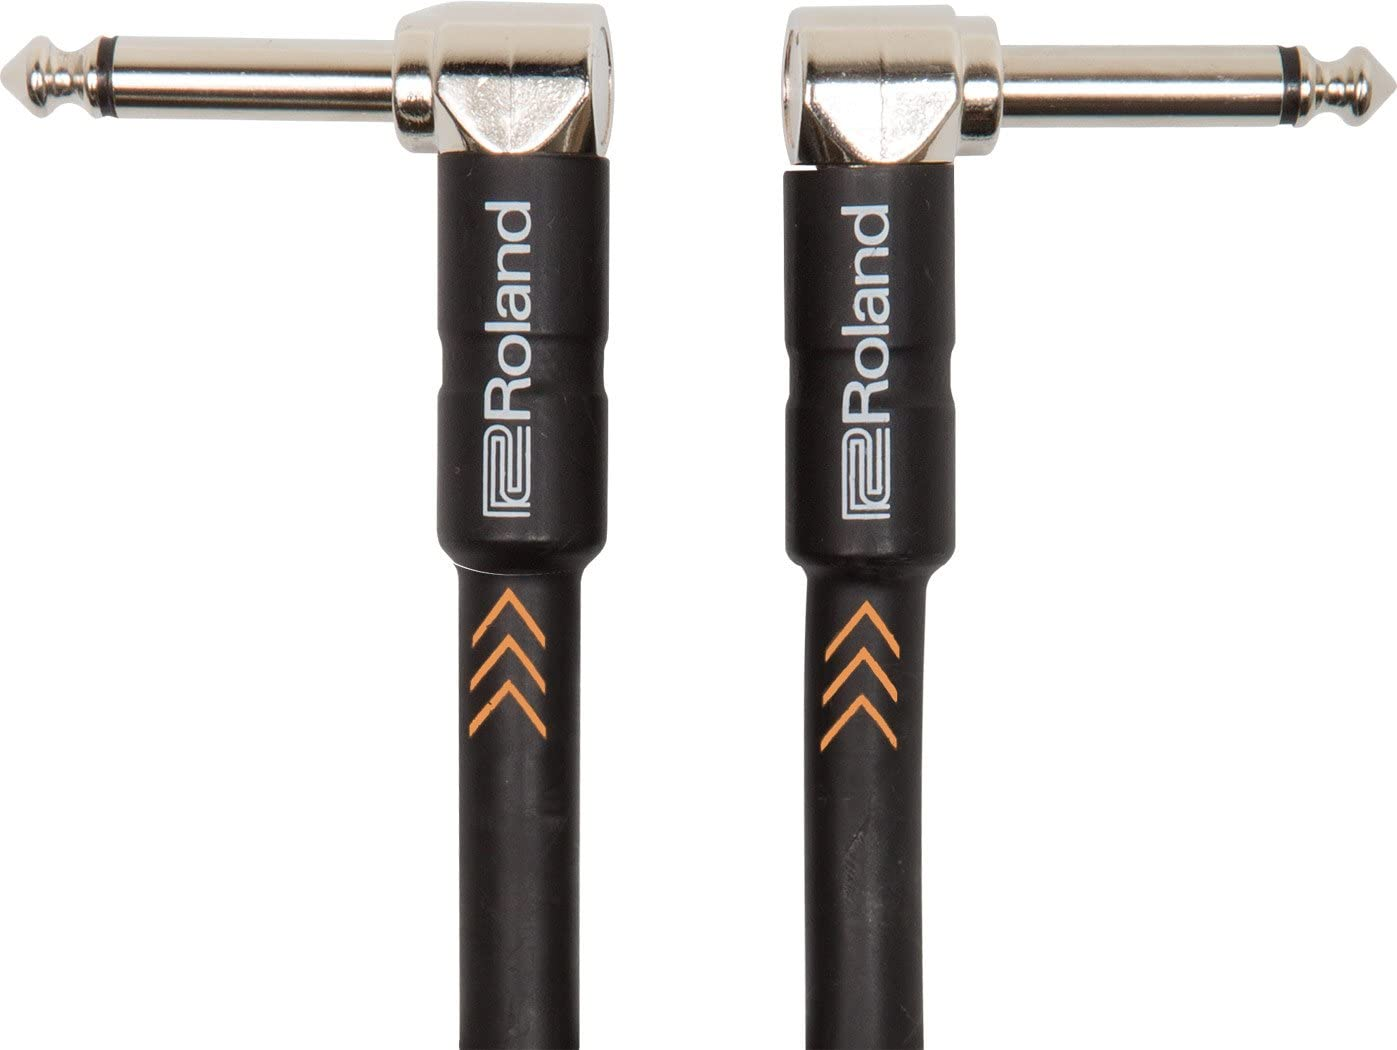 Roland Black Series Instrument Cable, Angled/Angled 1/4-Inch Jack, 6-Inch